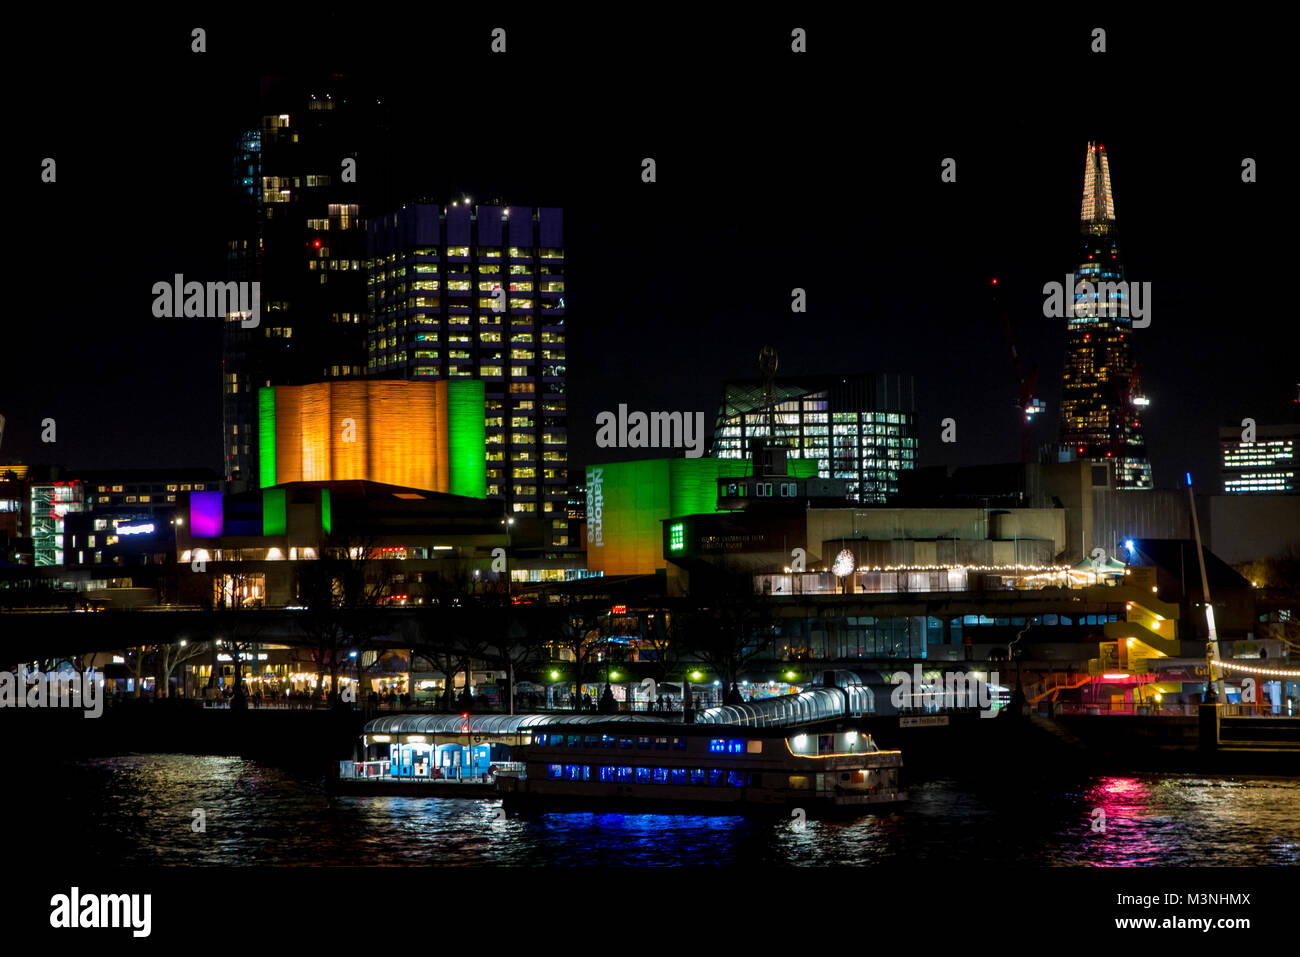 The bright lights of London's South Bank at night - Stock Image